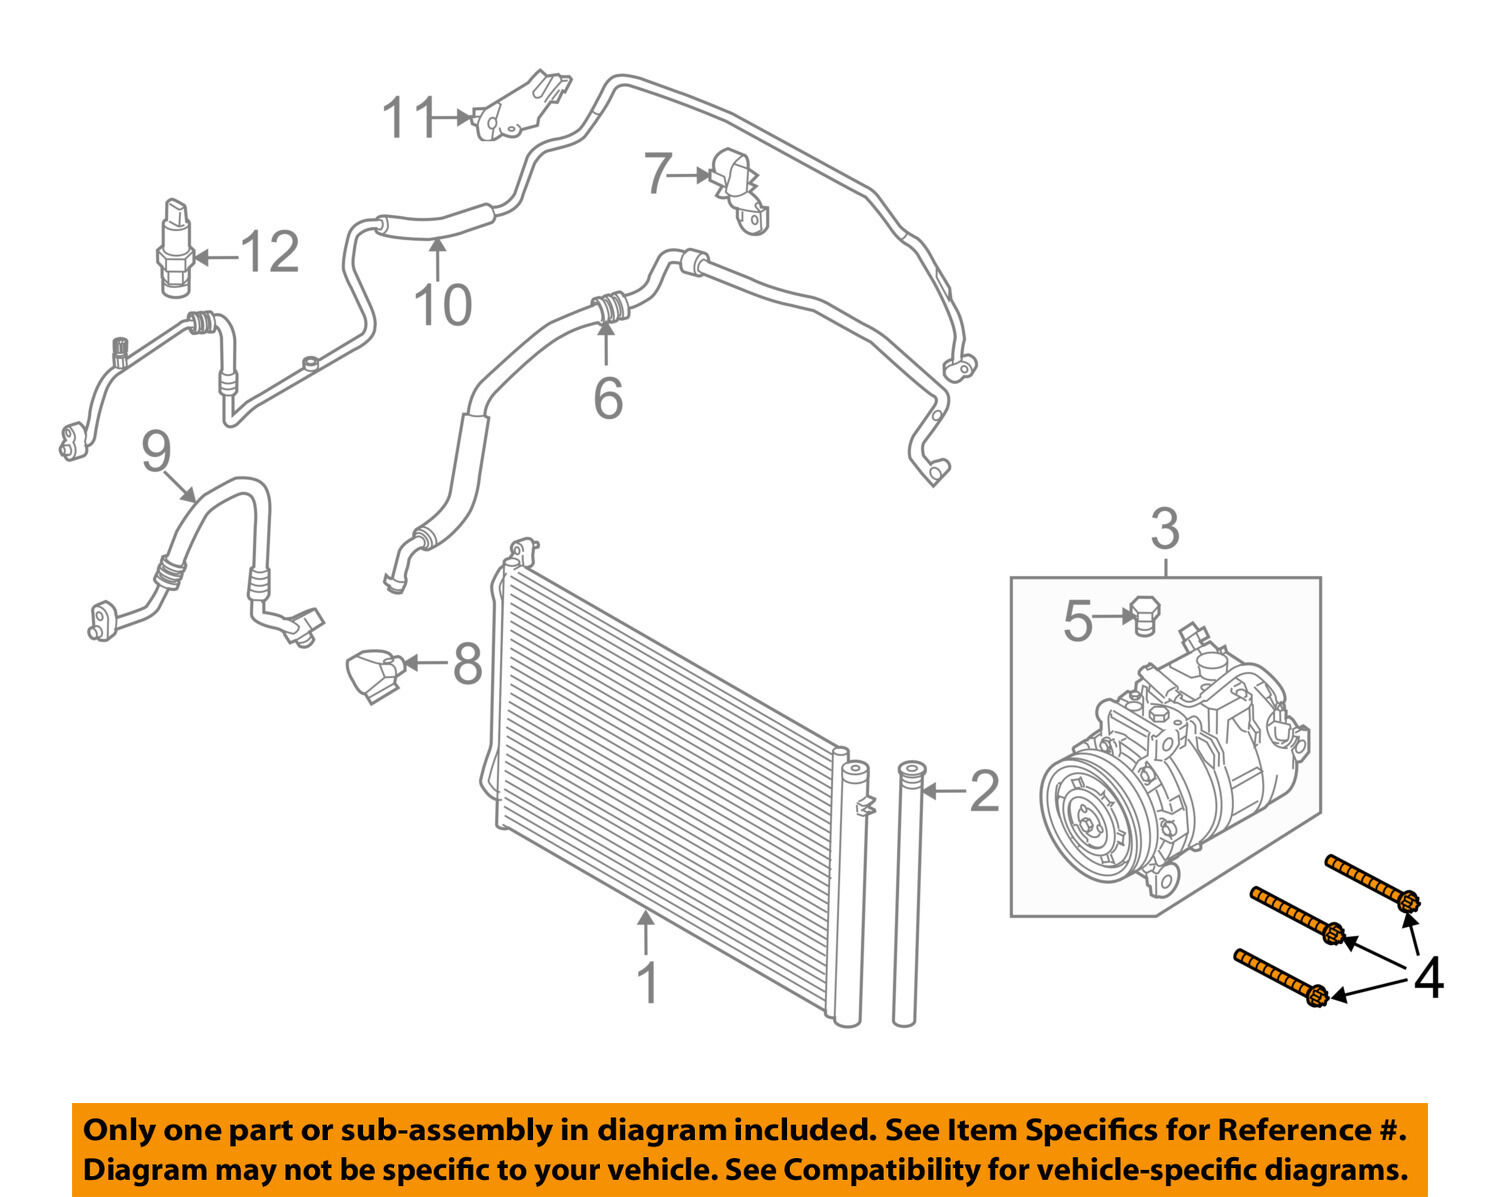 Bmw Oem 11 16 X3 Front Bumper Impact Bar Reinforcement Rebar Bolt 2011 Engine Diagram 07119904996 For Sale